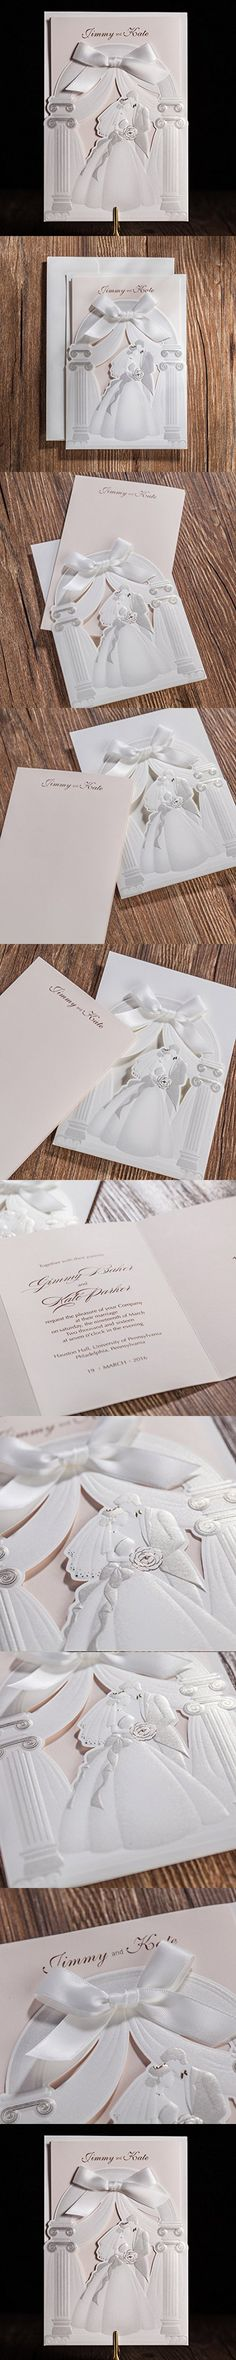 bridal shower invitations free printable templates%0A Wishmade Laser Cut Trifold Embossed Wedding Invitations Cards Kits with  Bride and Groom Patterns Bridal Shower Engagment Birthday Paper Cardstock  with Satin